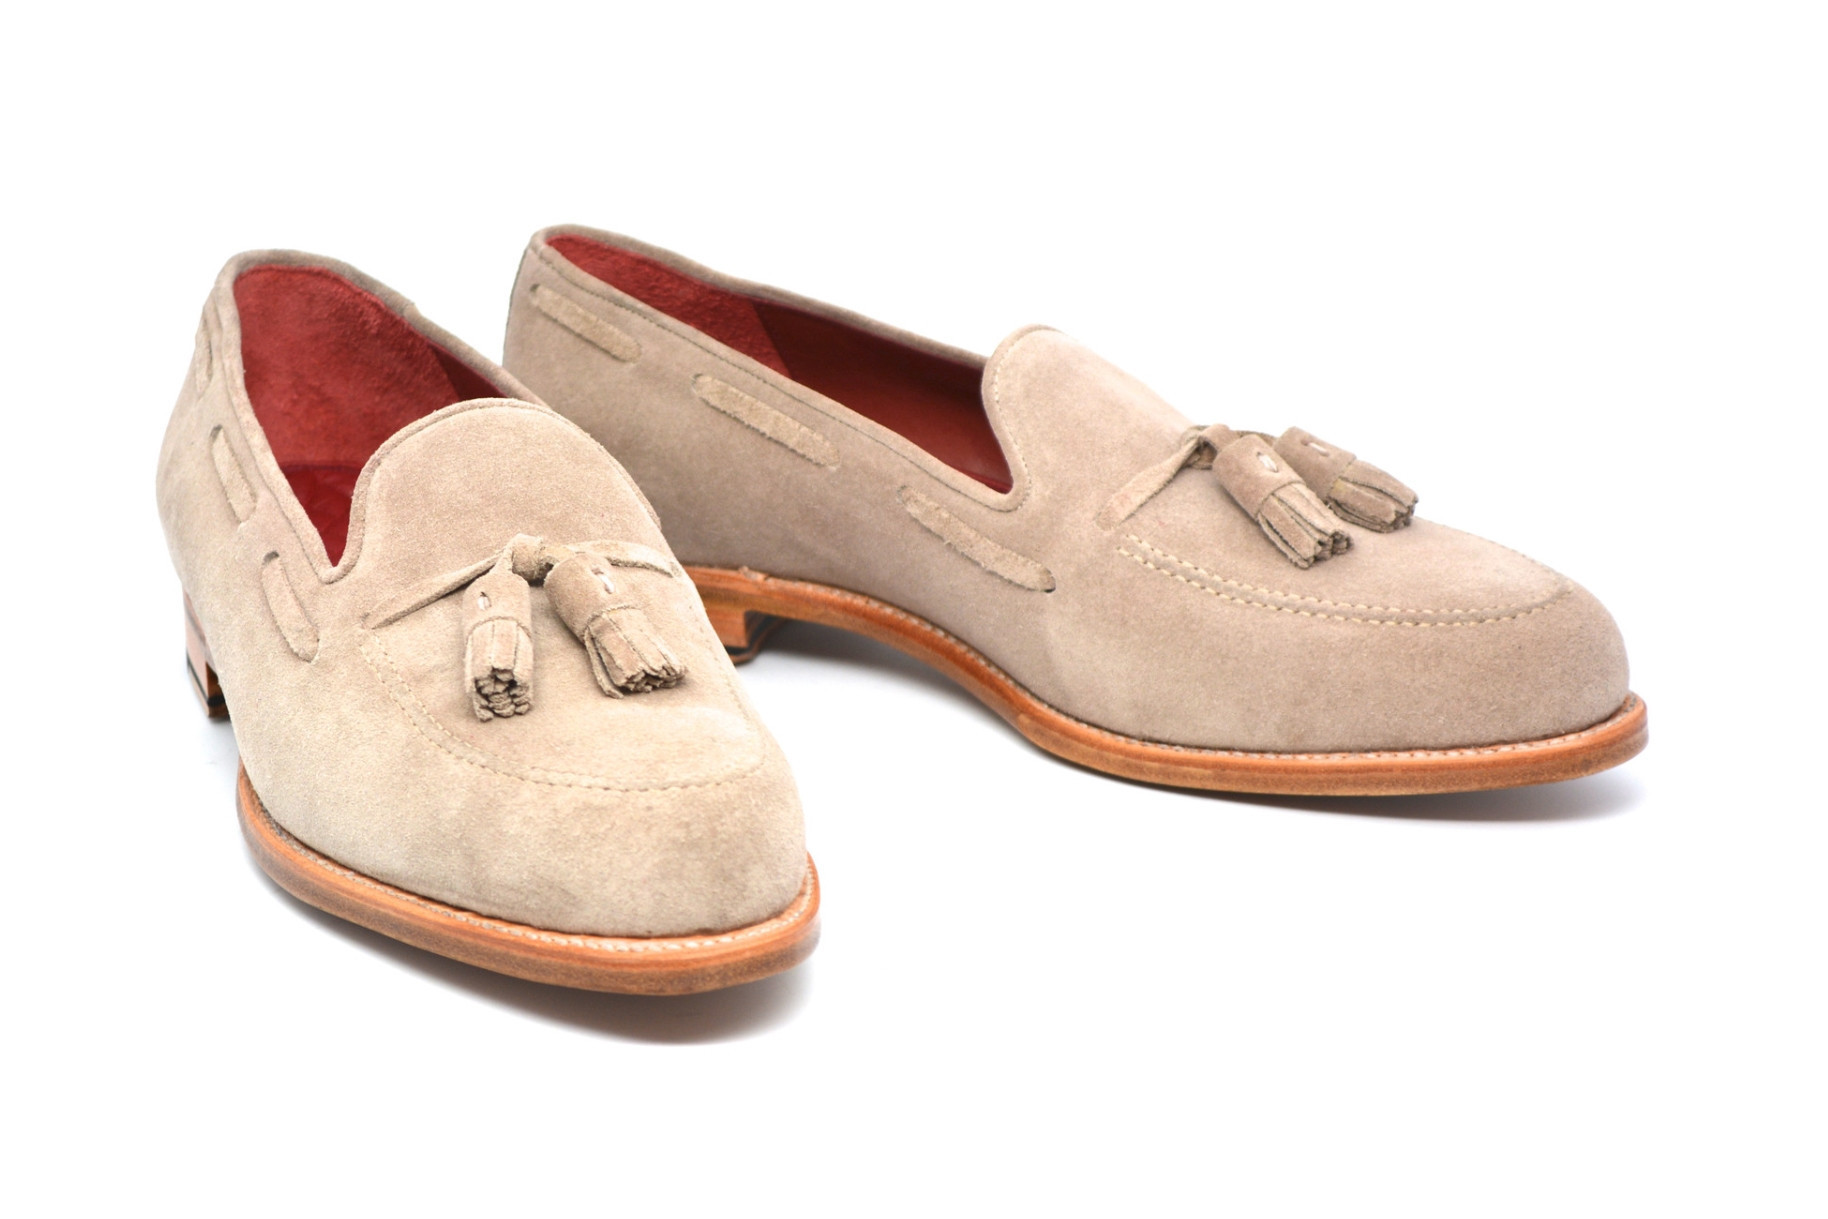 Cobbler Union Nude Suede Tassel Loafers